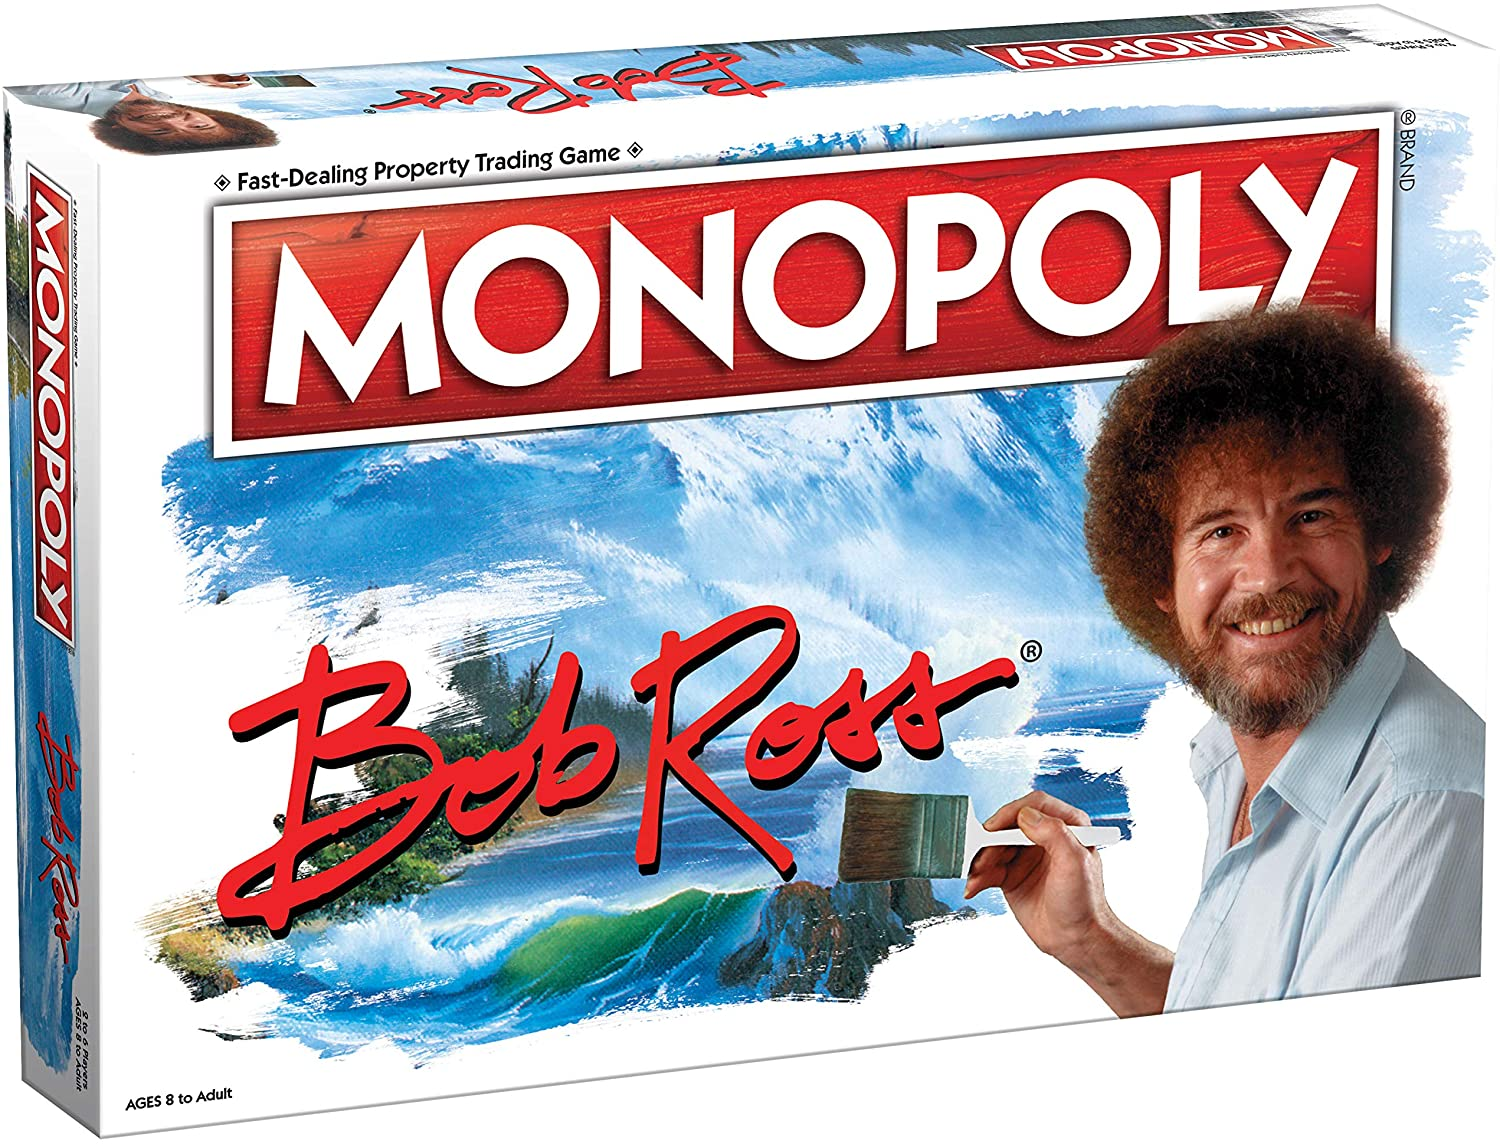 Monopoly Bob Ross   Collectible Monopoly Game Featuring Bob Ross Artwork   Officially Licensed Monopoly